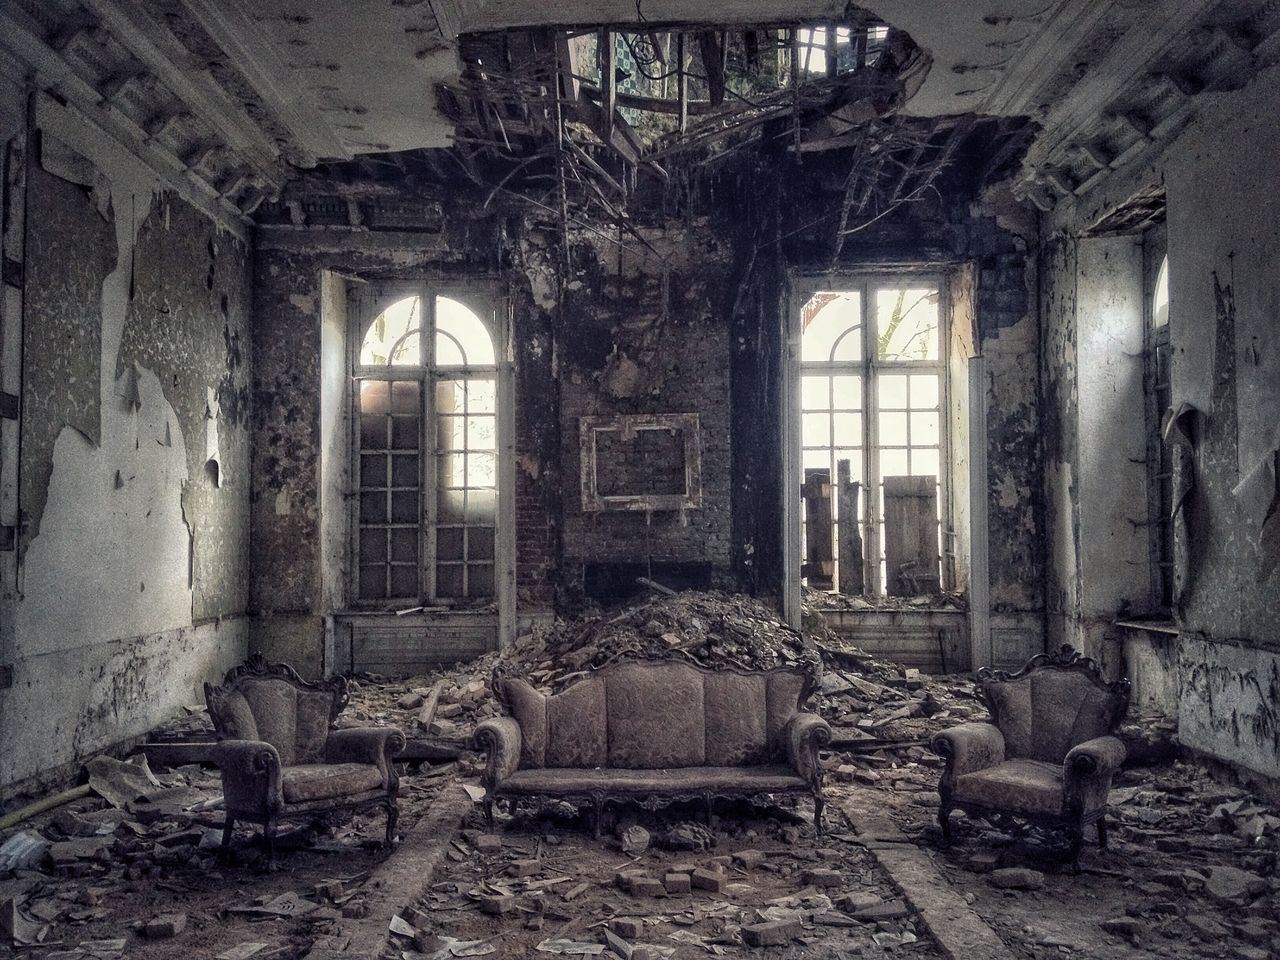 Abandoned Damaged Window Run-down Bad Condition Messy Ruined Obsolete Old Ruin Indoors  Old Destruction Broken Interior No People Discarded Home Interior Peeled Worn Out Architecture